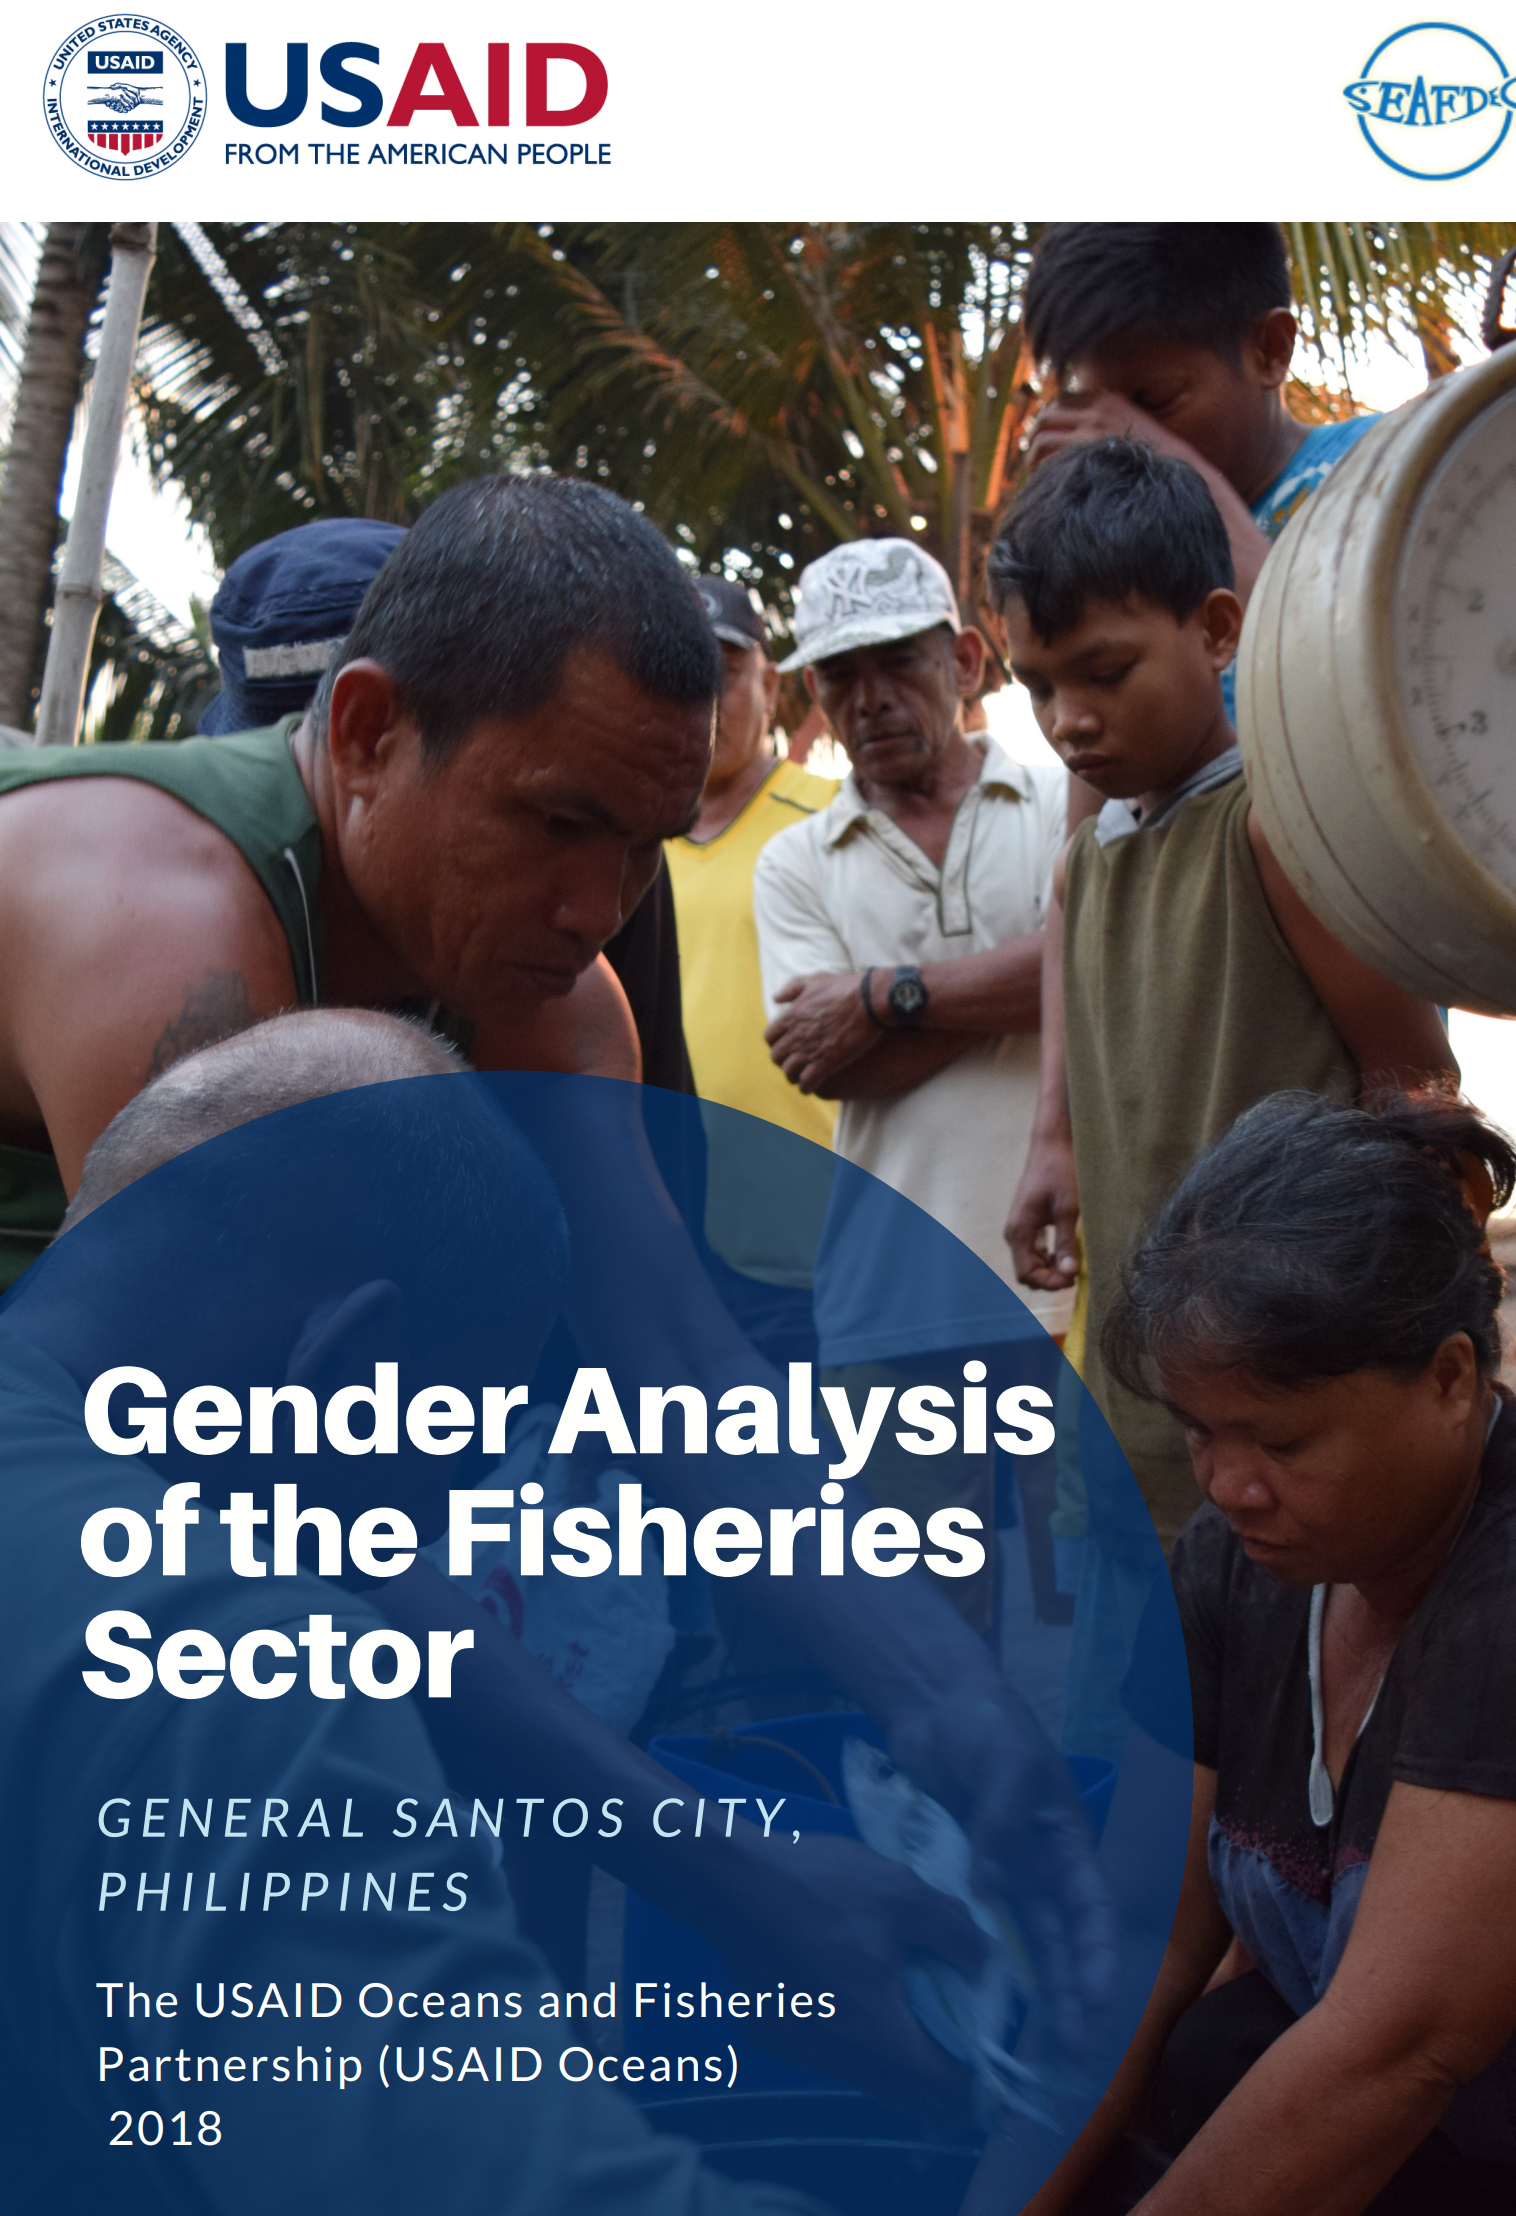 Gender Analysis of the Fisheries Sector